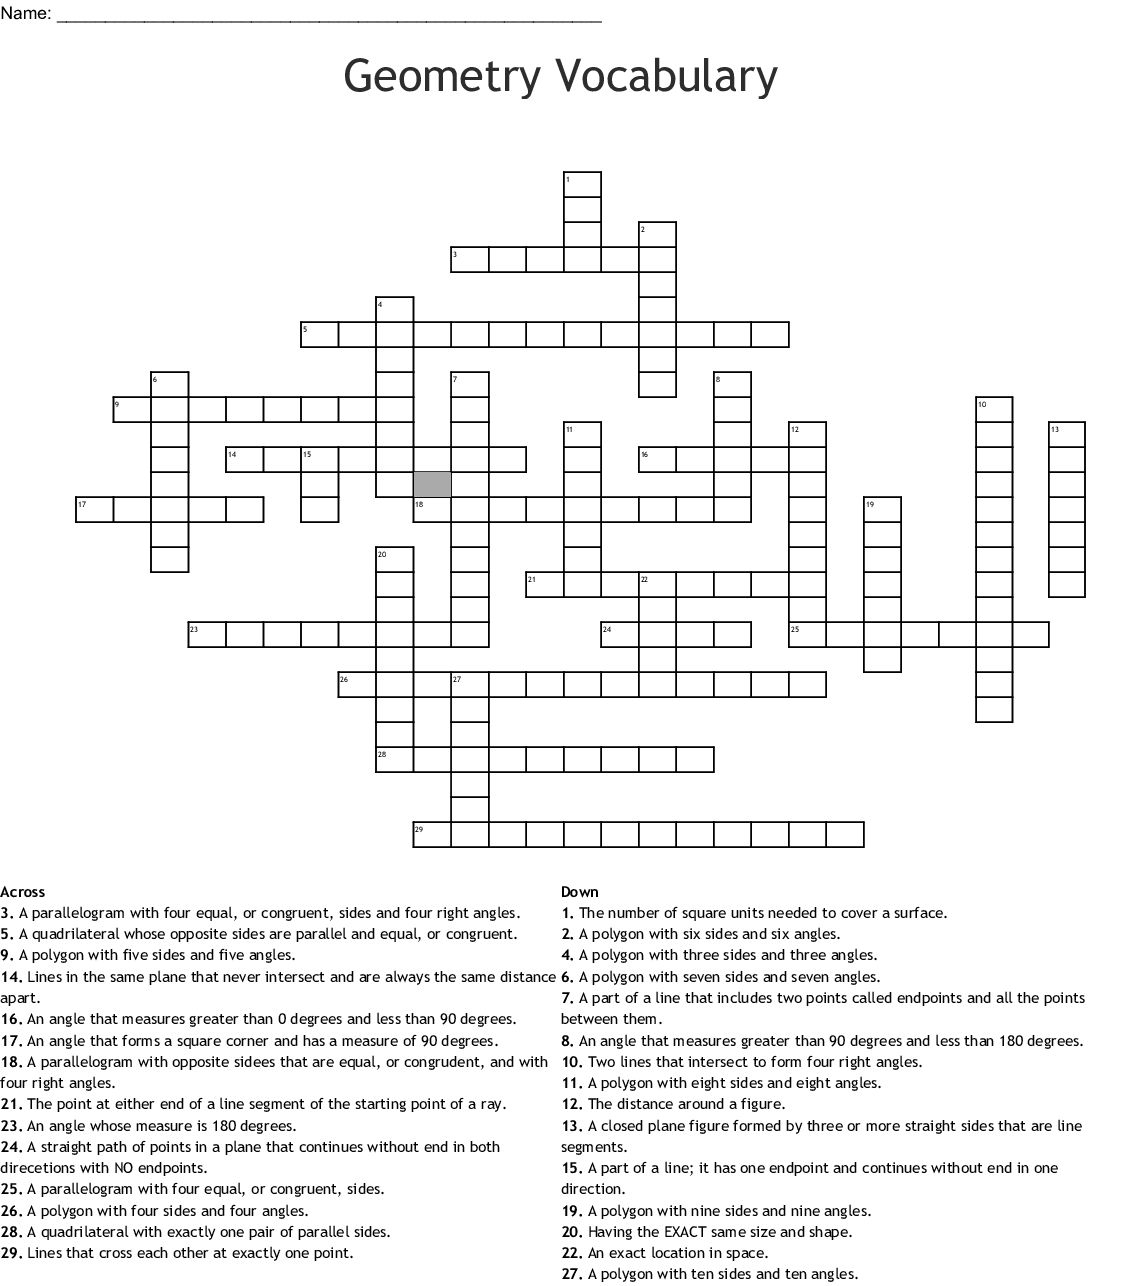 Geometry Vocabulary Crossword - Wordmint - Printable Vocabulary Crossword Puzzles